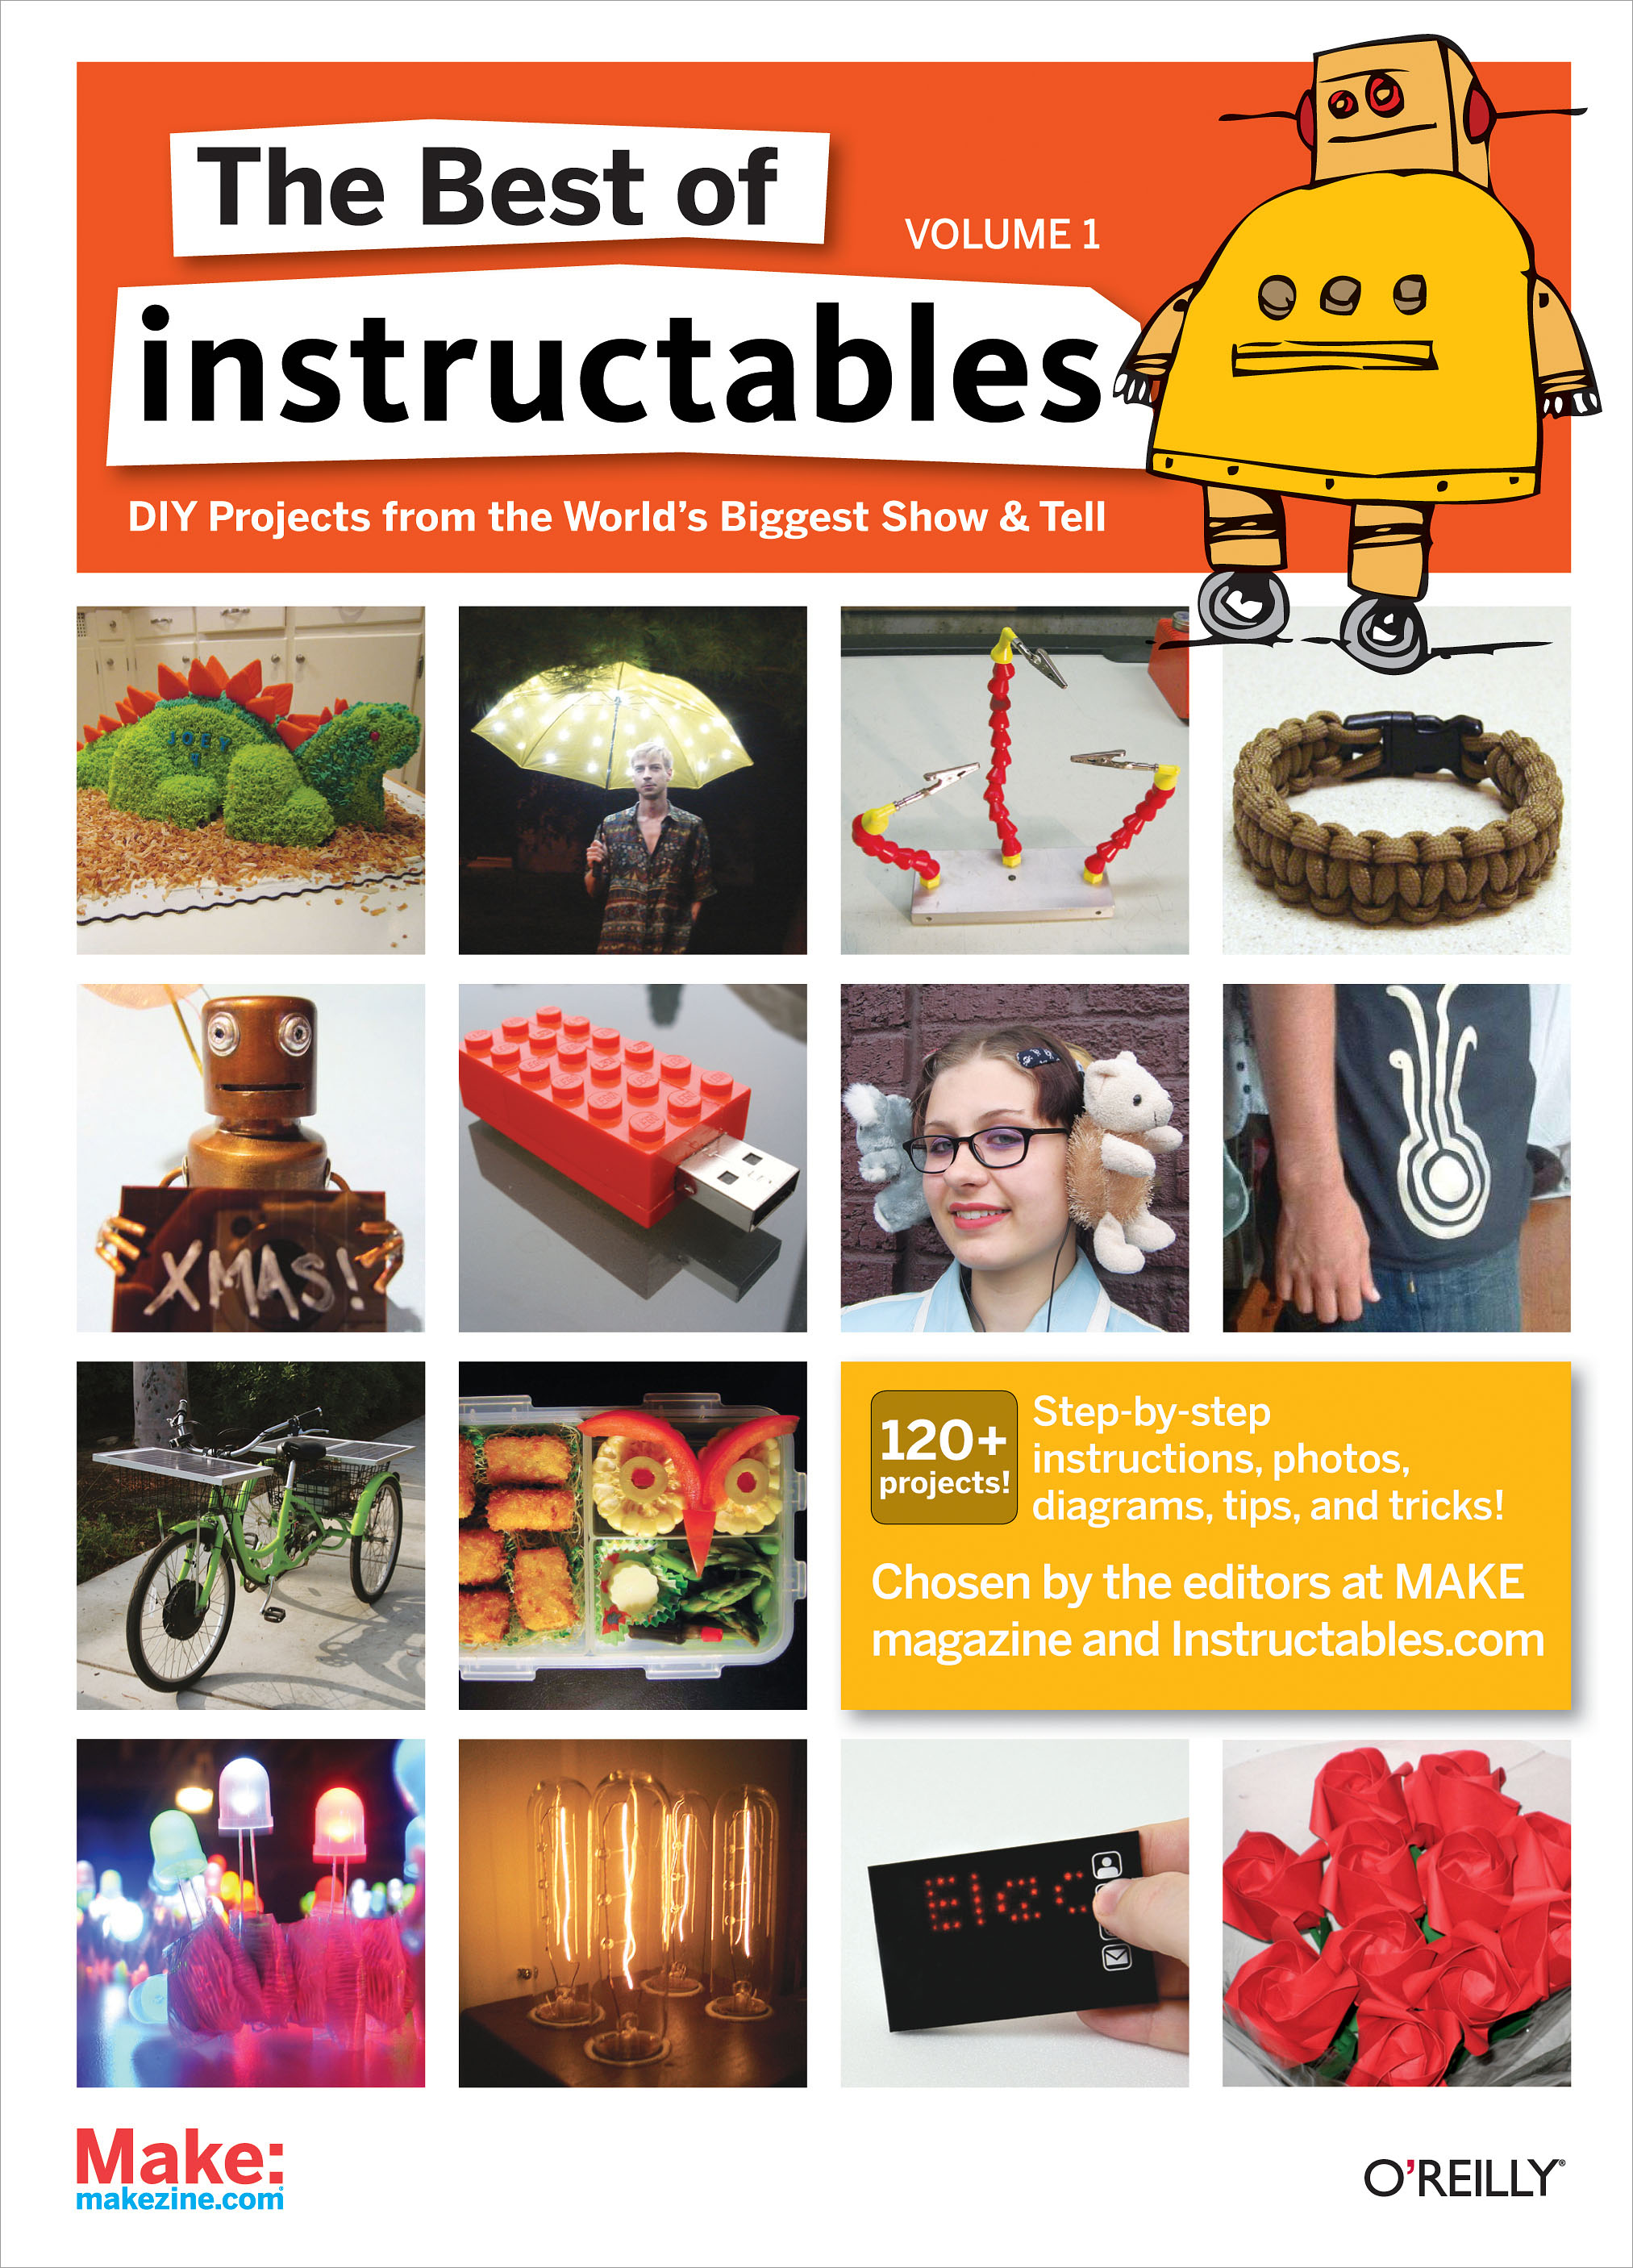 The Best of Instructables Volume I Do-It-Yourself Projects from the World's Biggest Show & Tell